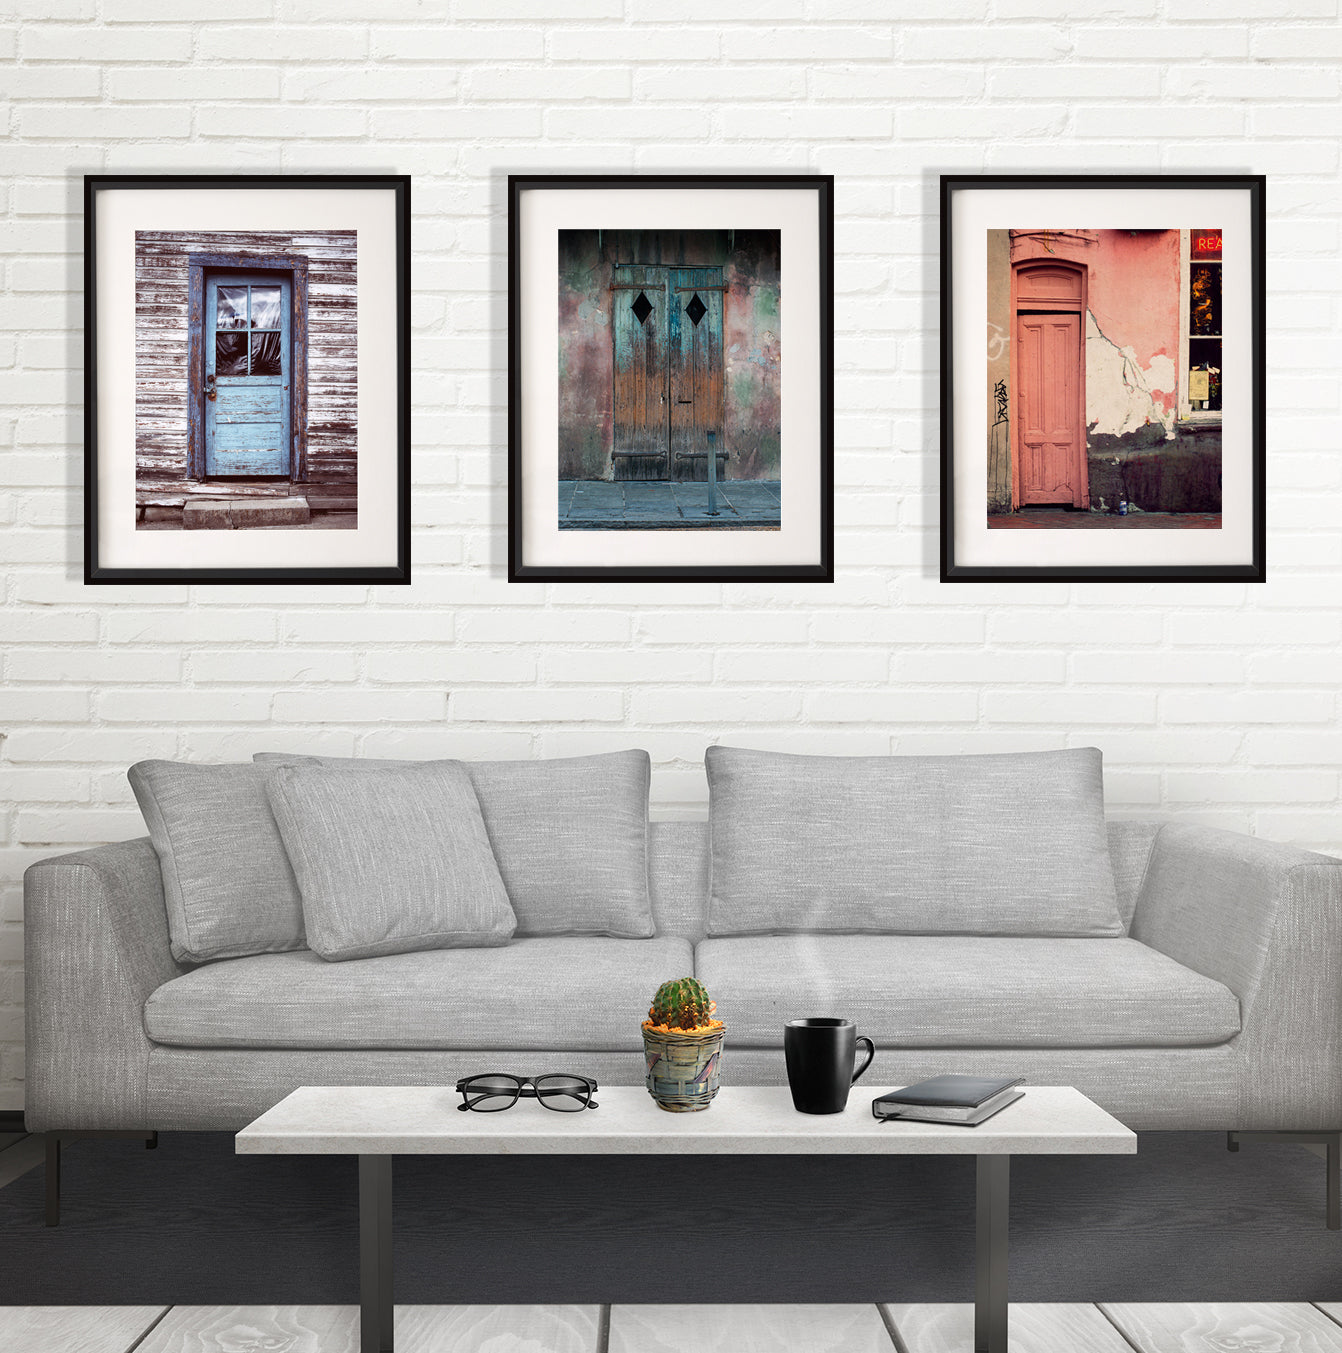 Collection of 3 Prints, Old Doors, Rustic Wall Art Set